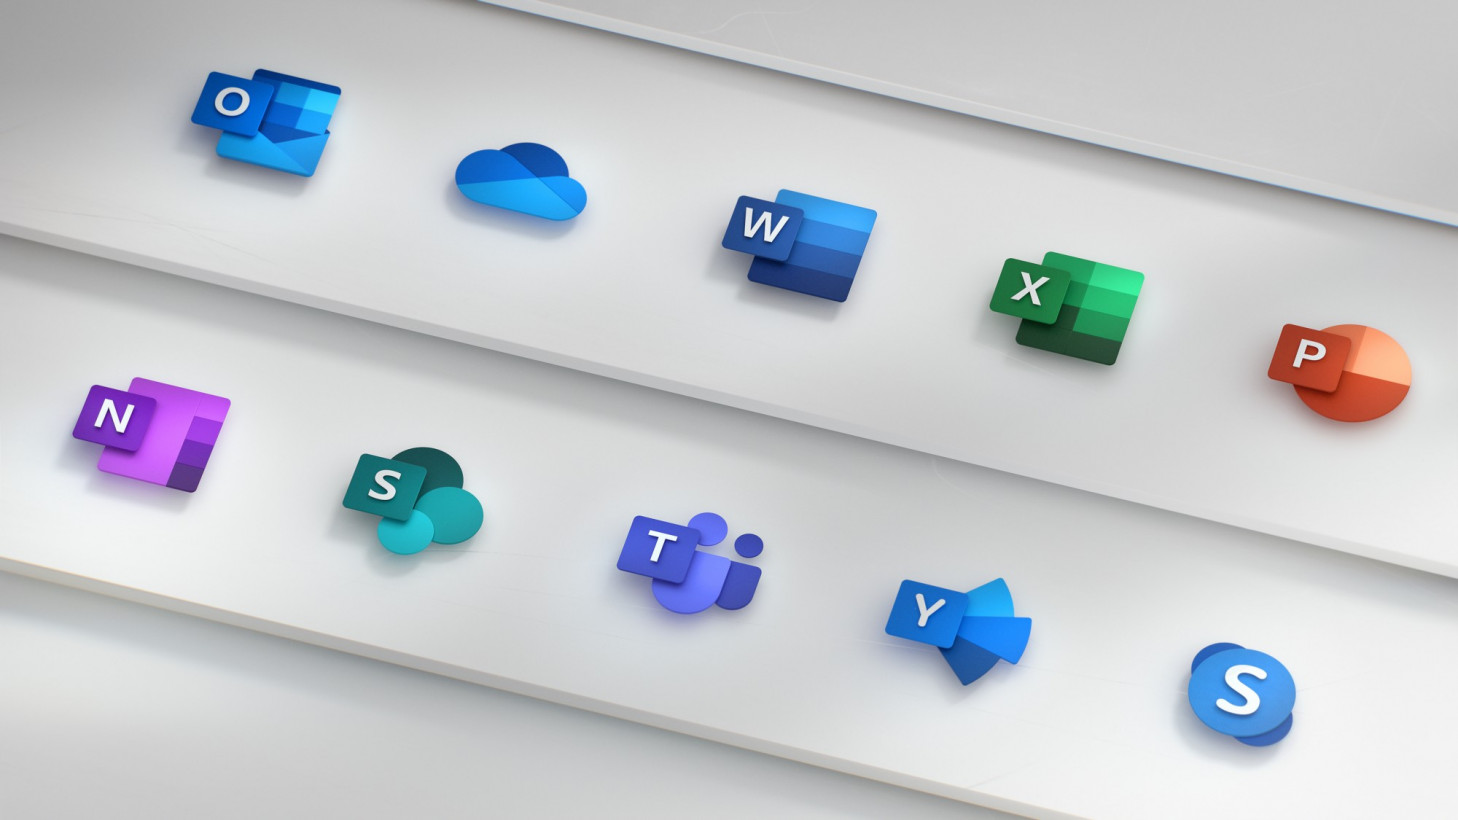 Microsoft S New Office Logos Are A Beautiful Glimpse Of The Future Search, discover and share your favorite the office logo gifs. office logos are a beautiful glimpse